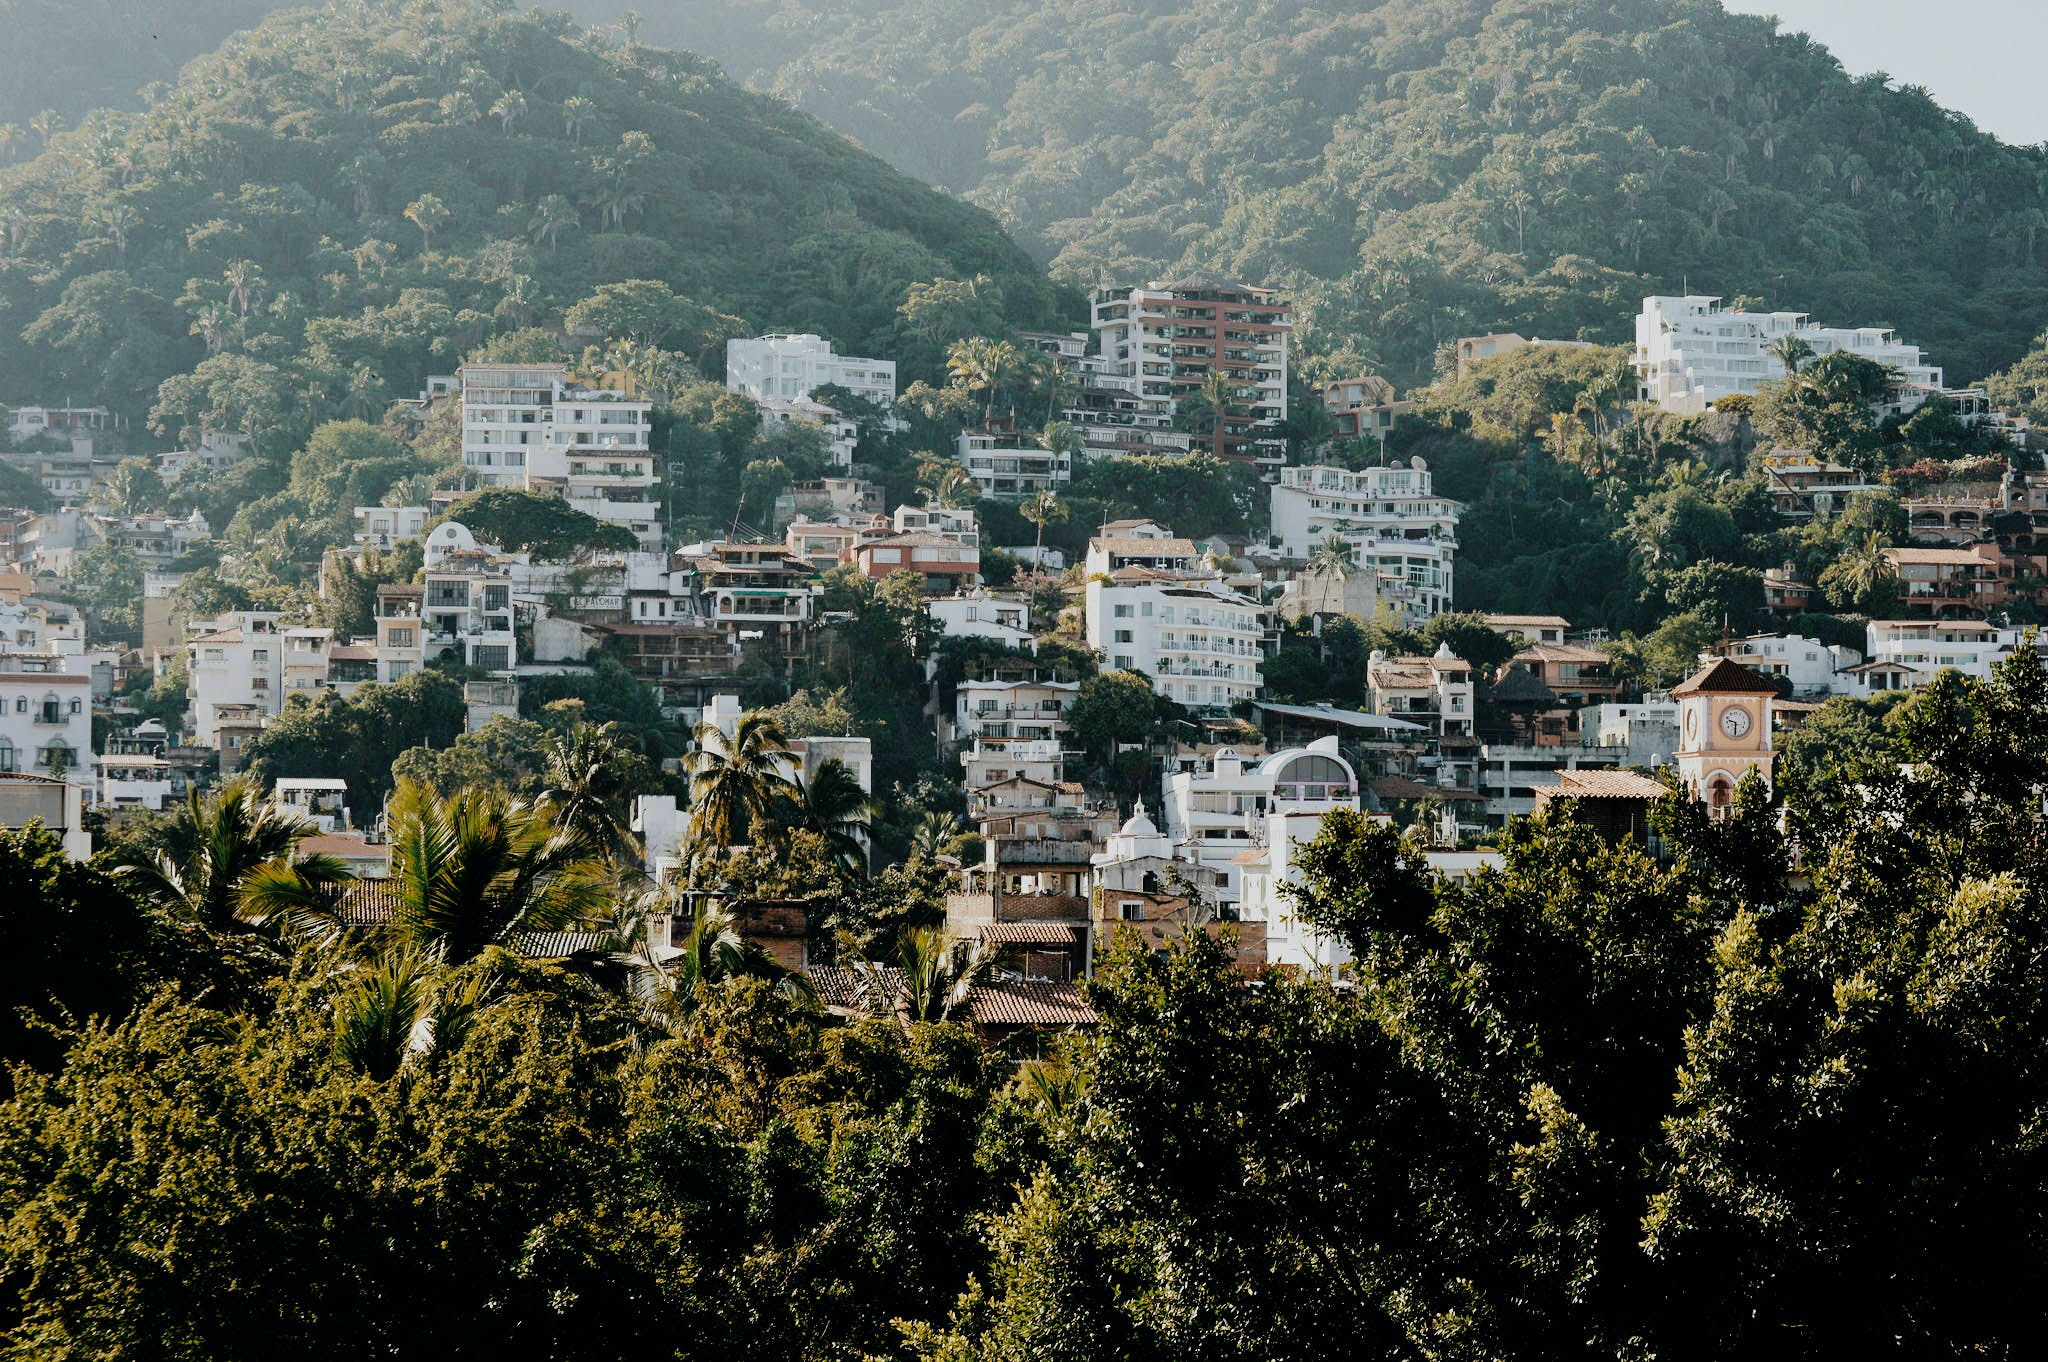 White and Brown Buildings on Mountain